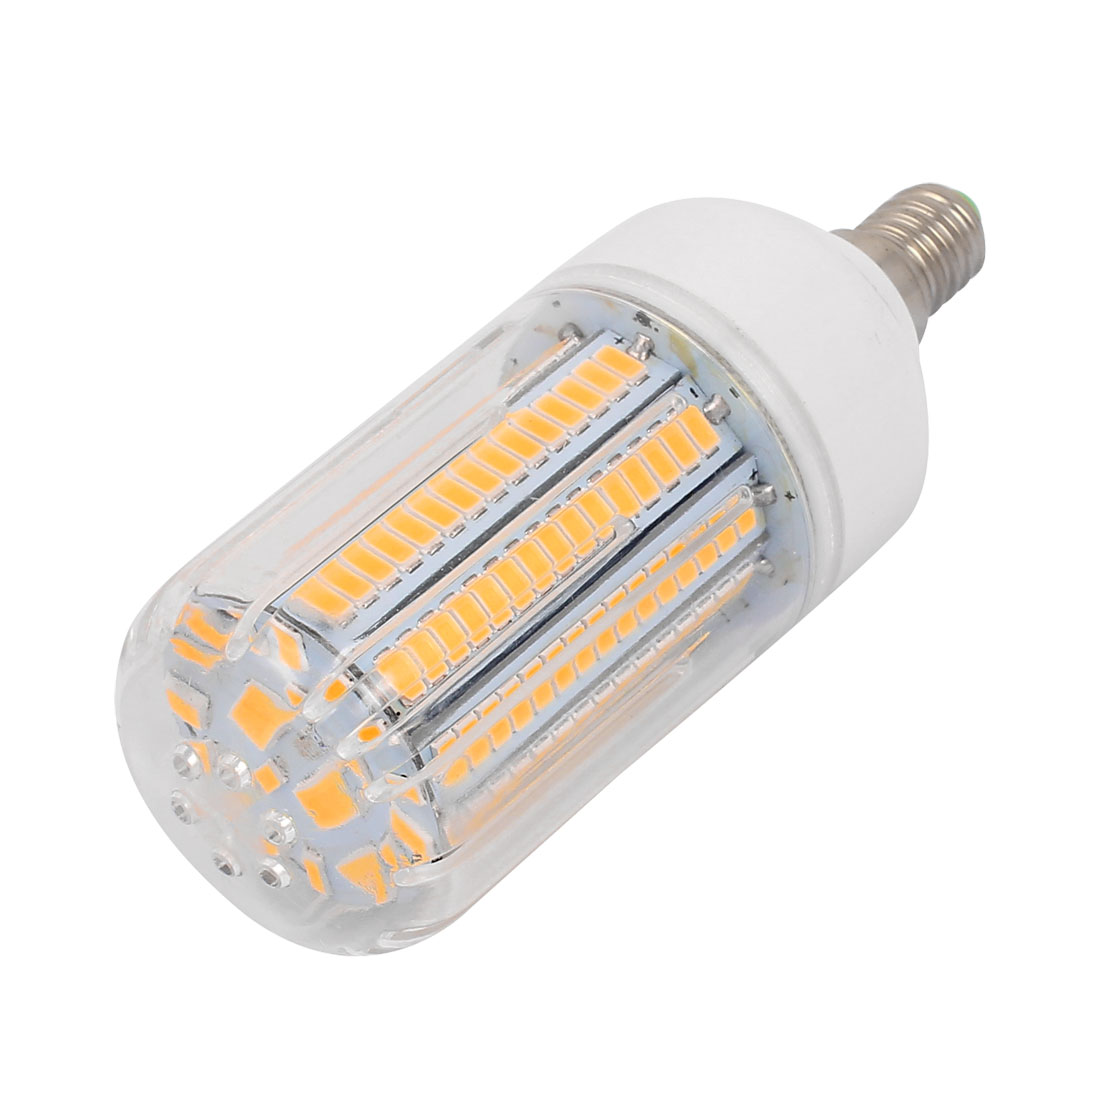 AC 220V E14 15W Warm White 170 LEDs 5736 SMD Energy Saving Silicone Corn Light Bulb